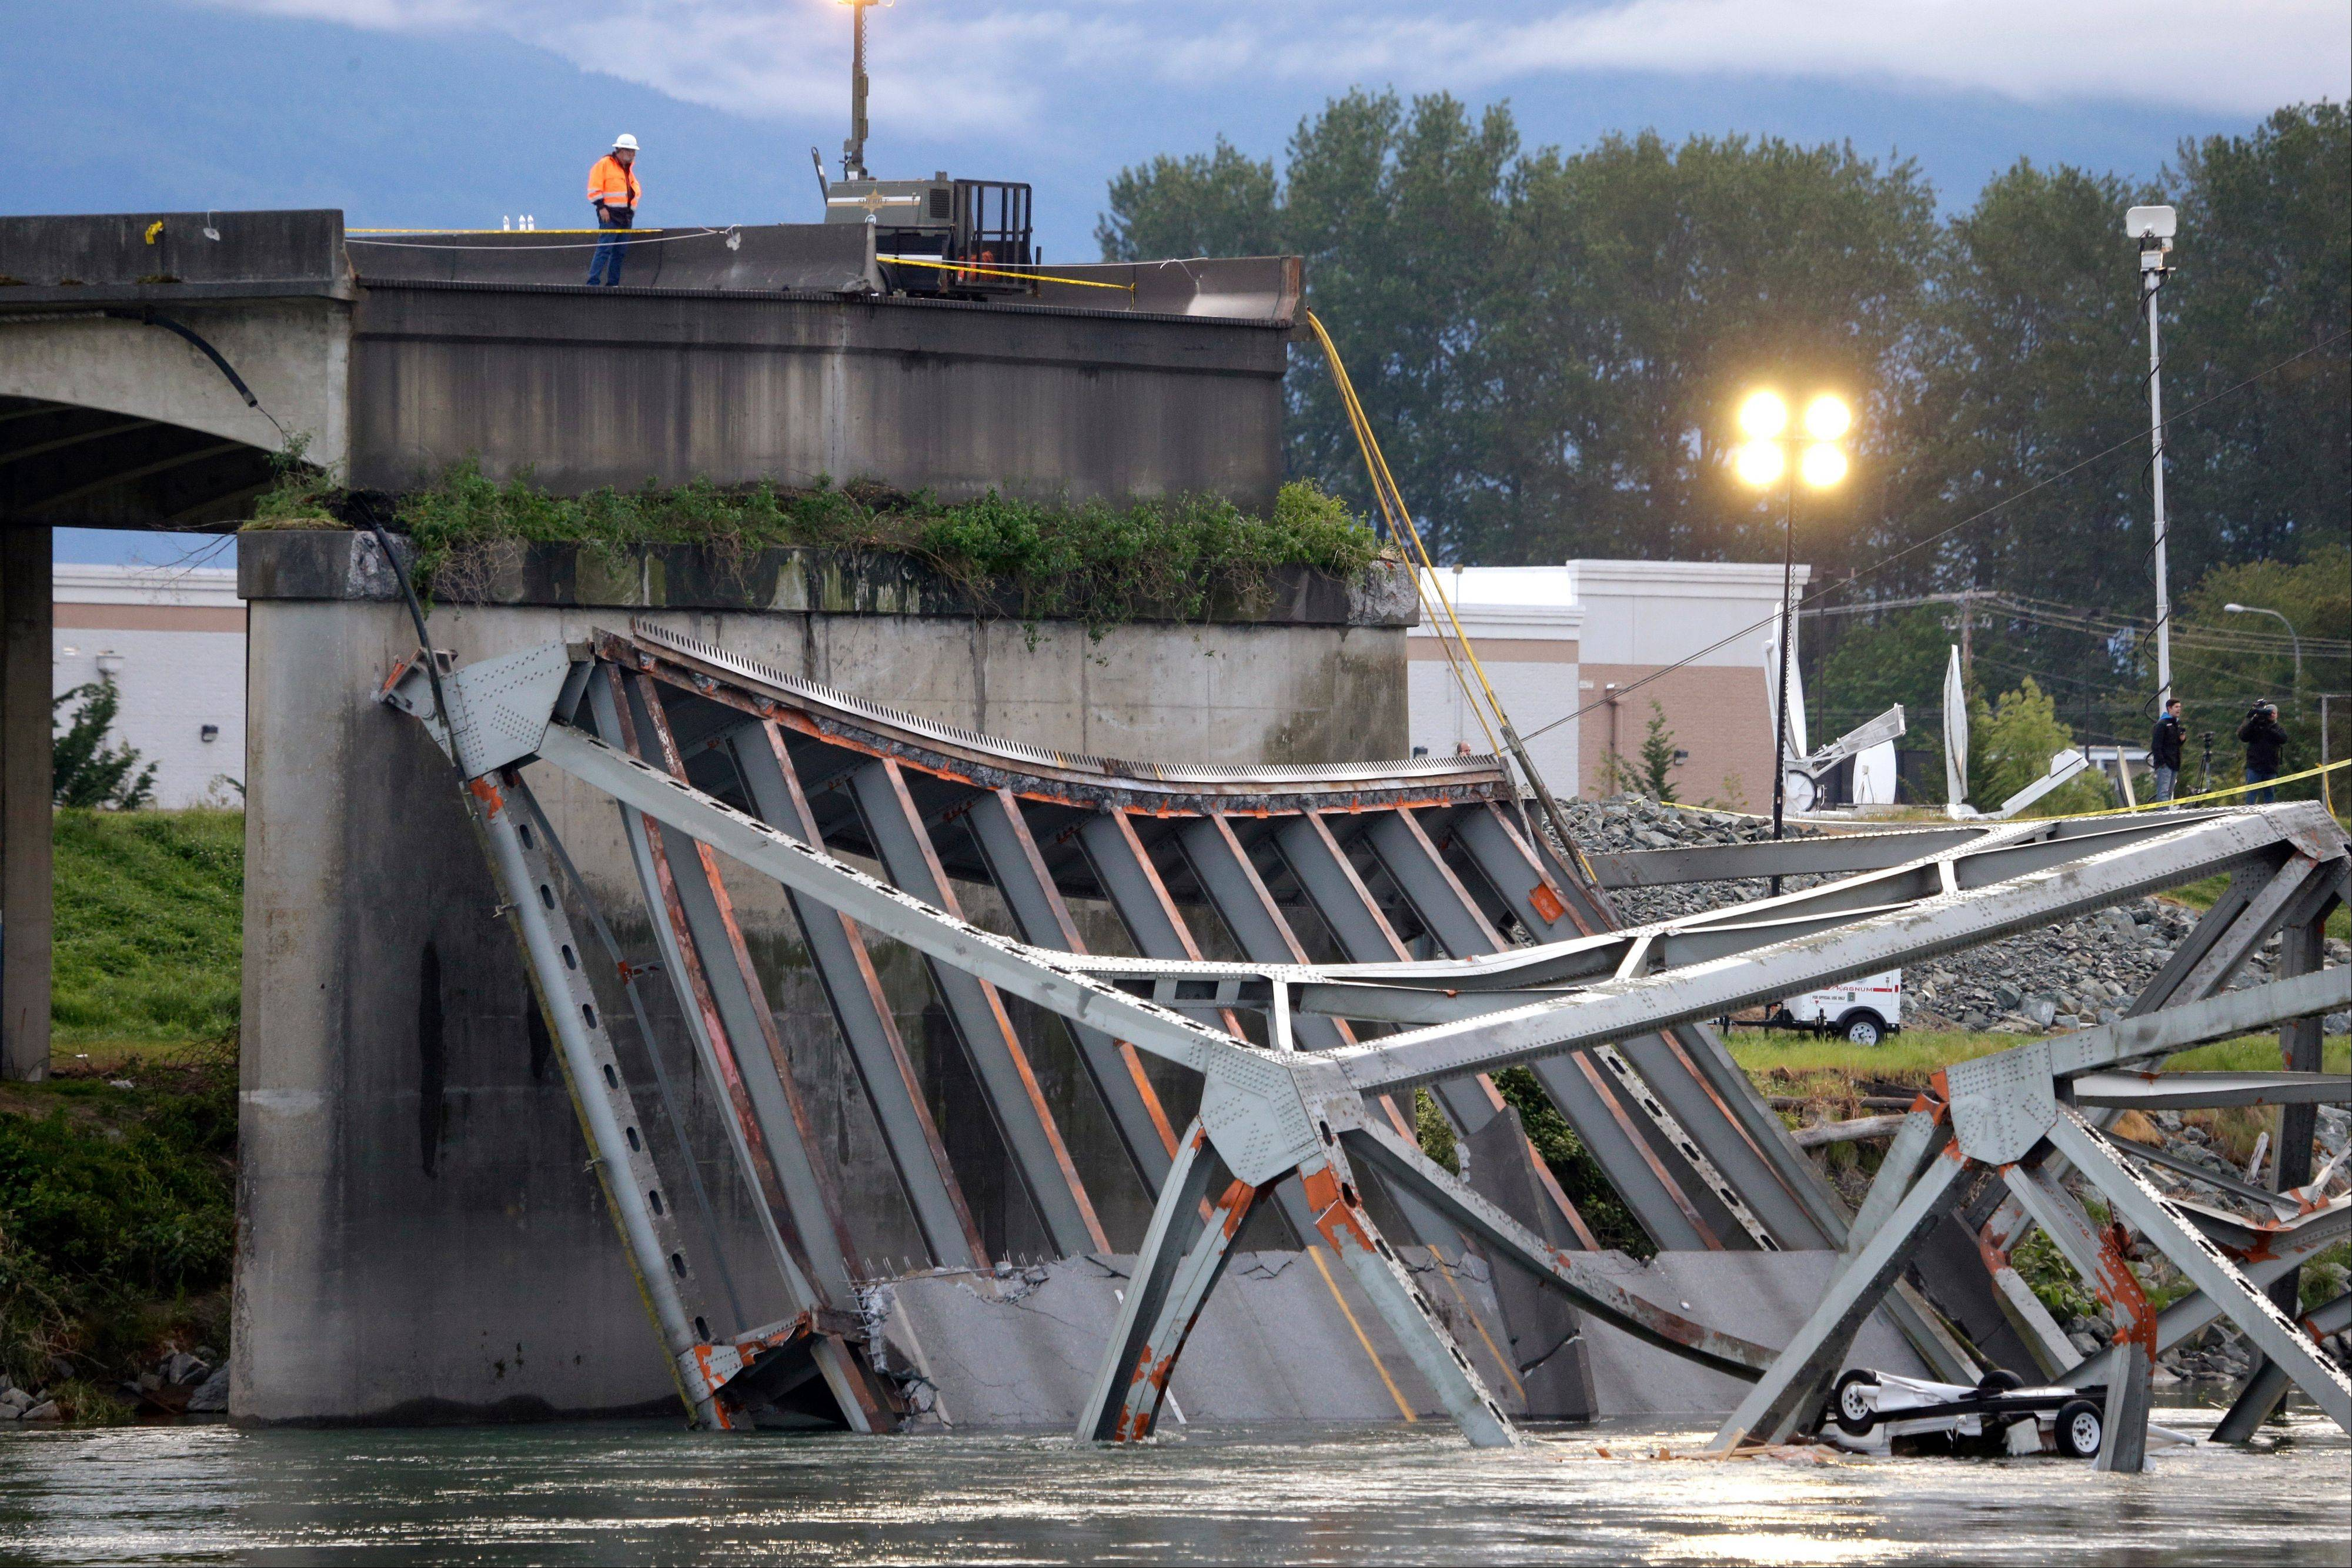 A worker looks at the collapsed portion of the Interstate 5 bridge at the Skagit River in Mount Vernon, Wash. A truck carrying an oversize load struck the four-lane bridge on the major thoroughfare between Seattle and Canada, sending a section of the span and two vehicles into the Skagit River below Thursday.